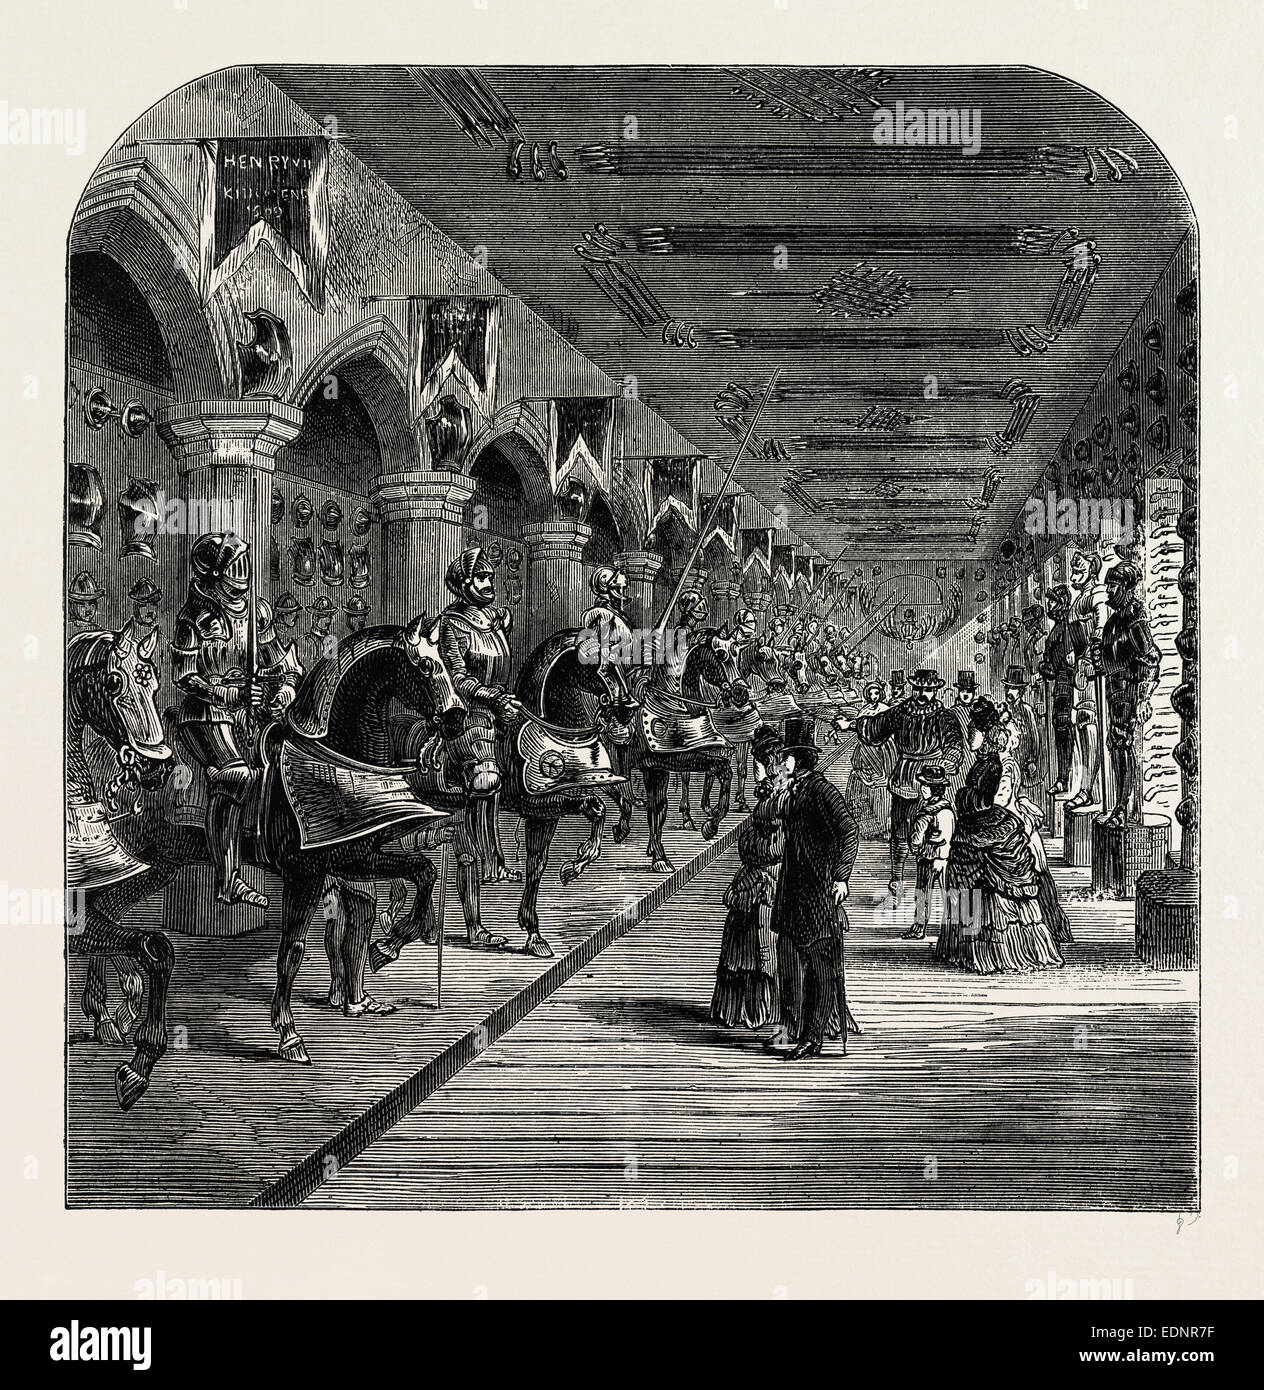 THE TOWER HORSE ARMOURY. London, UK, 19th century engraving - Stock Image